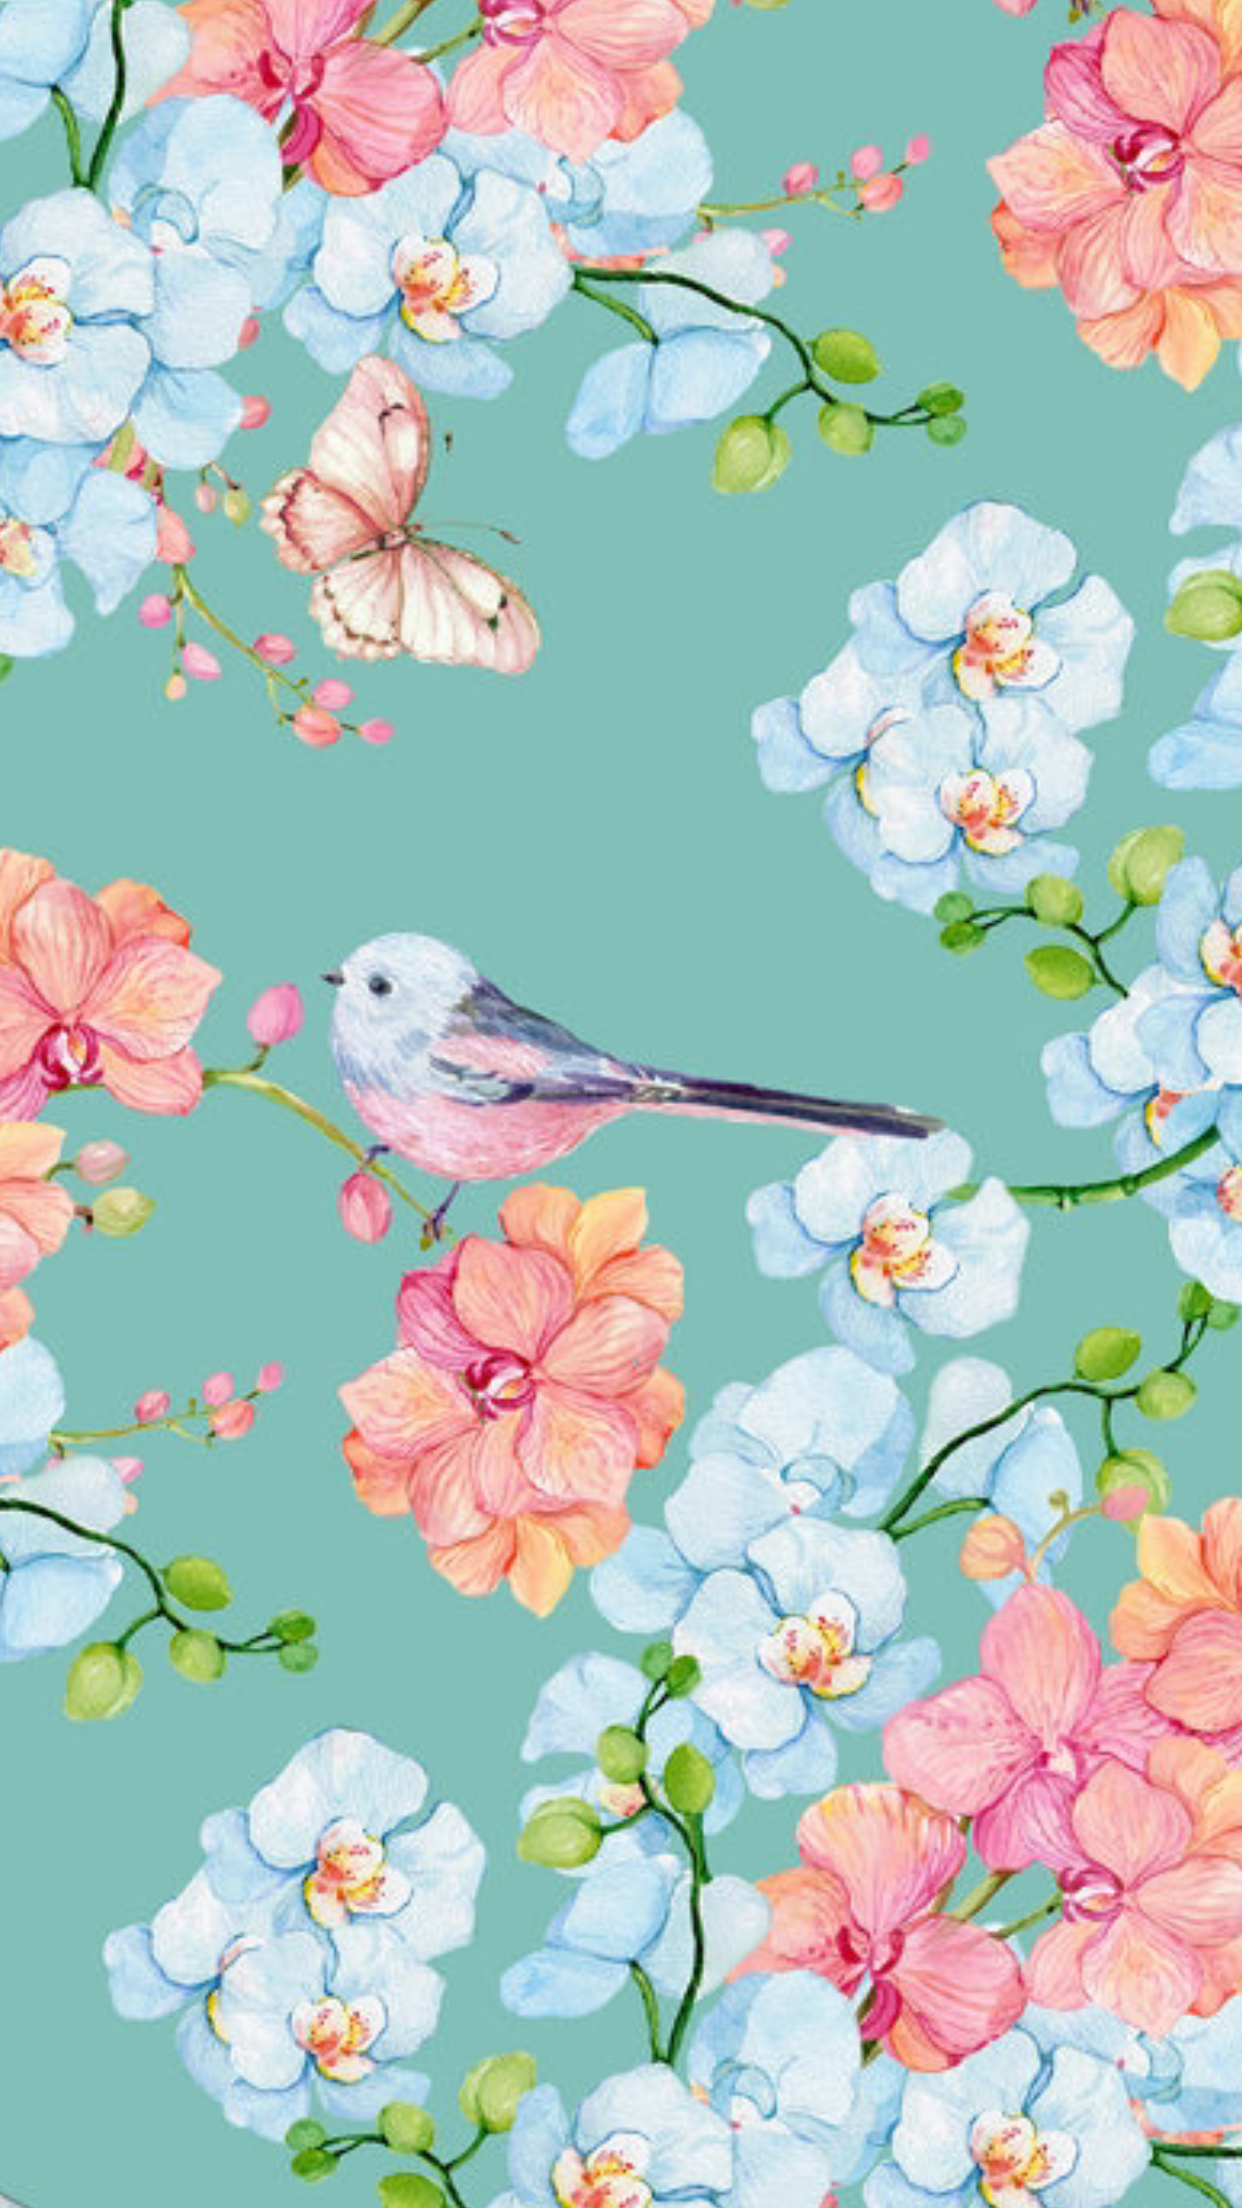 Summer Florals With Bird And Butterfly Watercolor Illustrations Pink Blue Teal Desktop Wallpaper Summer Watercolor Desktop Wallpaper Pattern Wallpaper